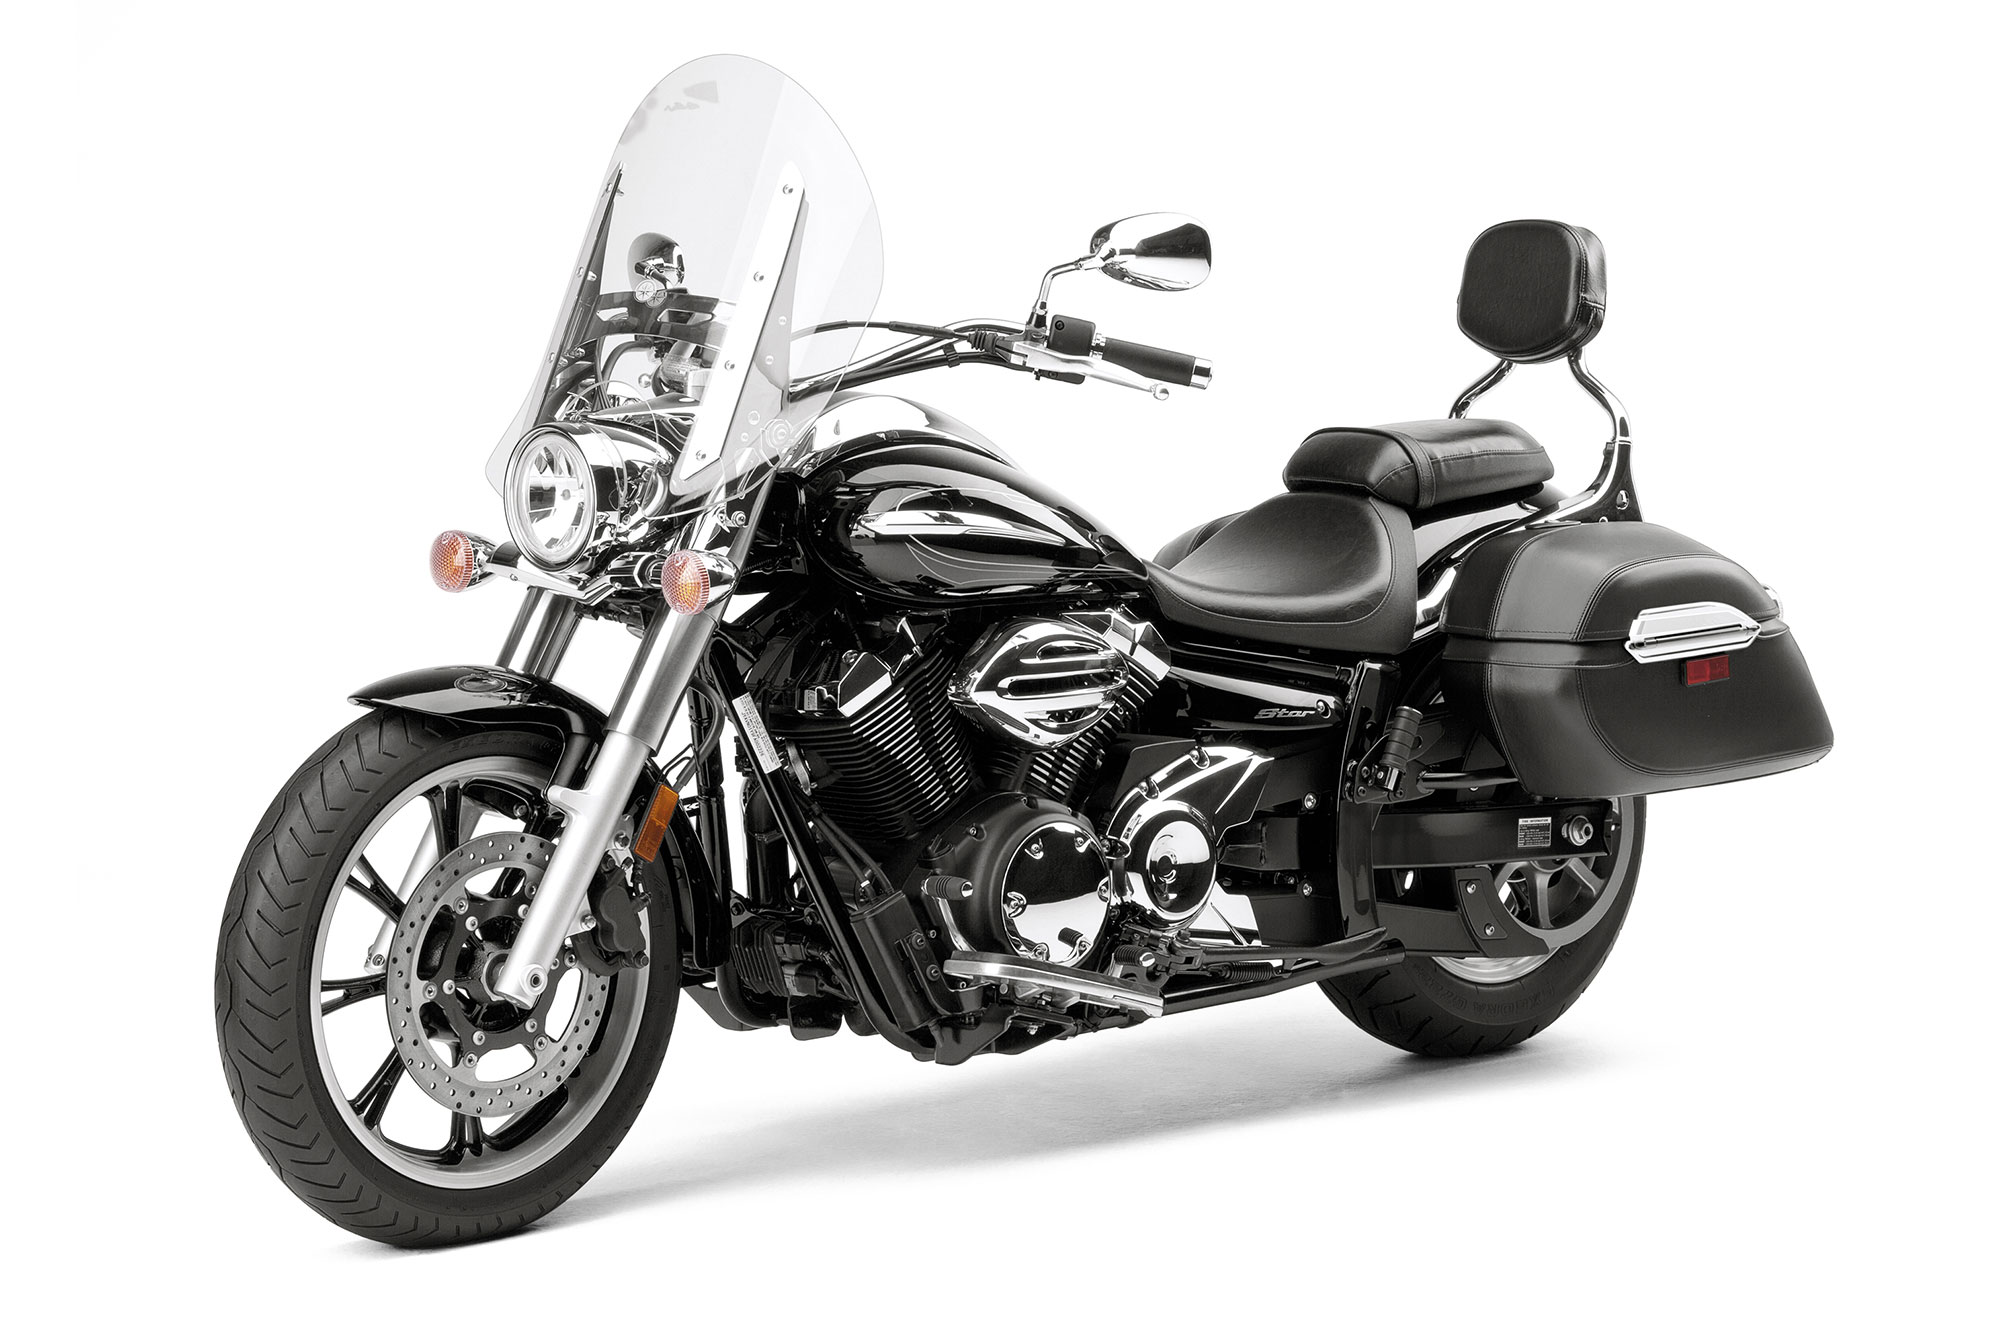 2016 yamaha v star 950 tourer review for Yamaha motorcycle store near me